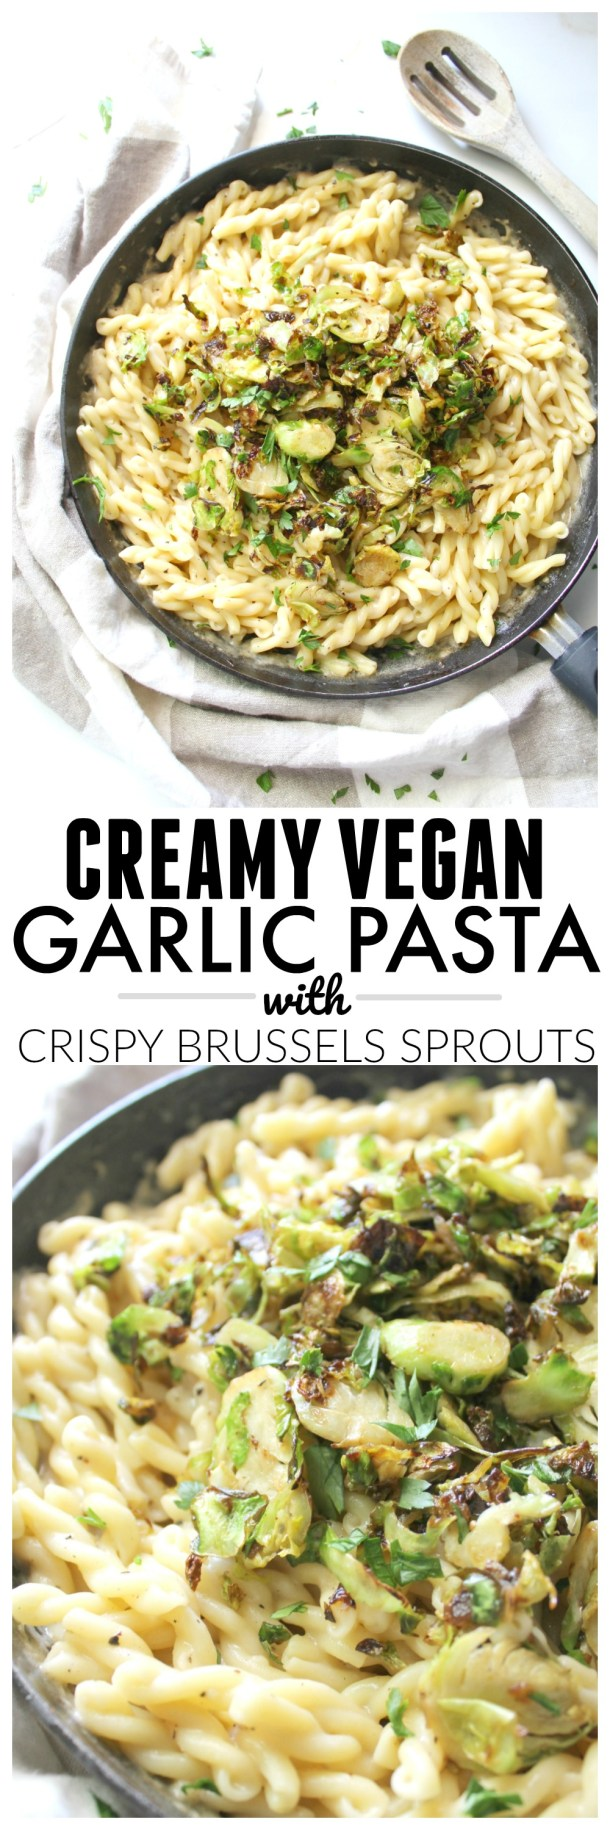 ThisCreamy Vegan Garlic Pasta with Crispy Brussels Sprouts is simple to make and the perfect Fall dinner to keep you warm and satisfied! | ThisSavoryVegan.com #vegan #veganpasta